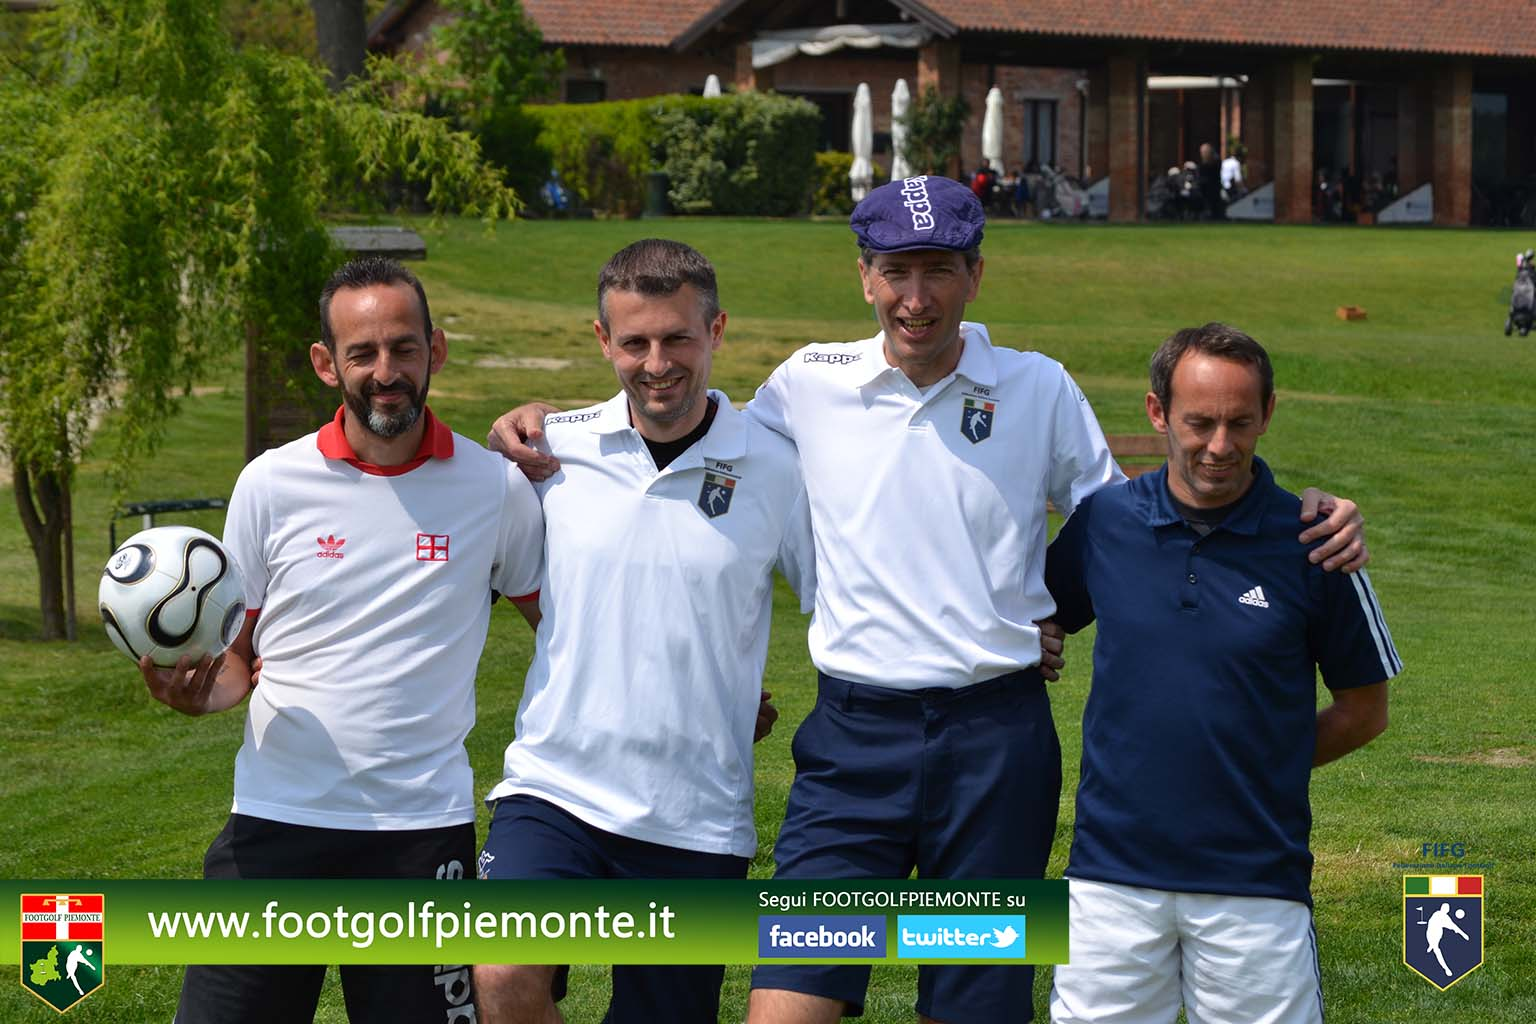 FOTO 9 Regions' Cup Footgolf Piemonte 2016 Golf Città di Asti (At) 30apr16-94